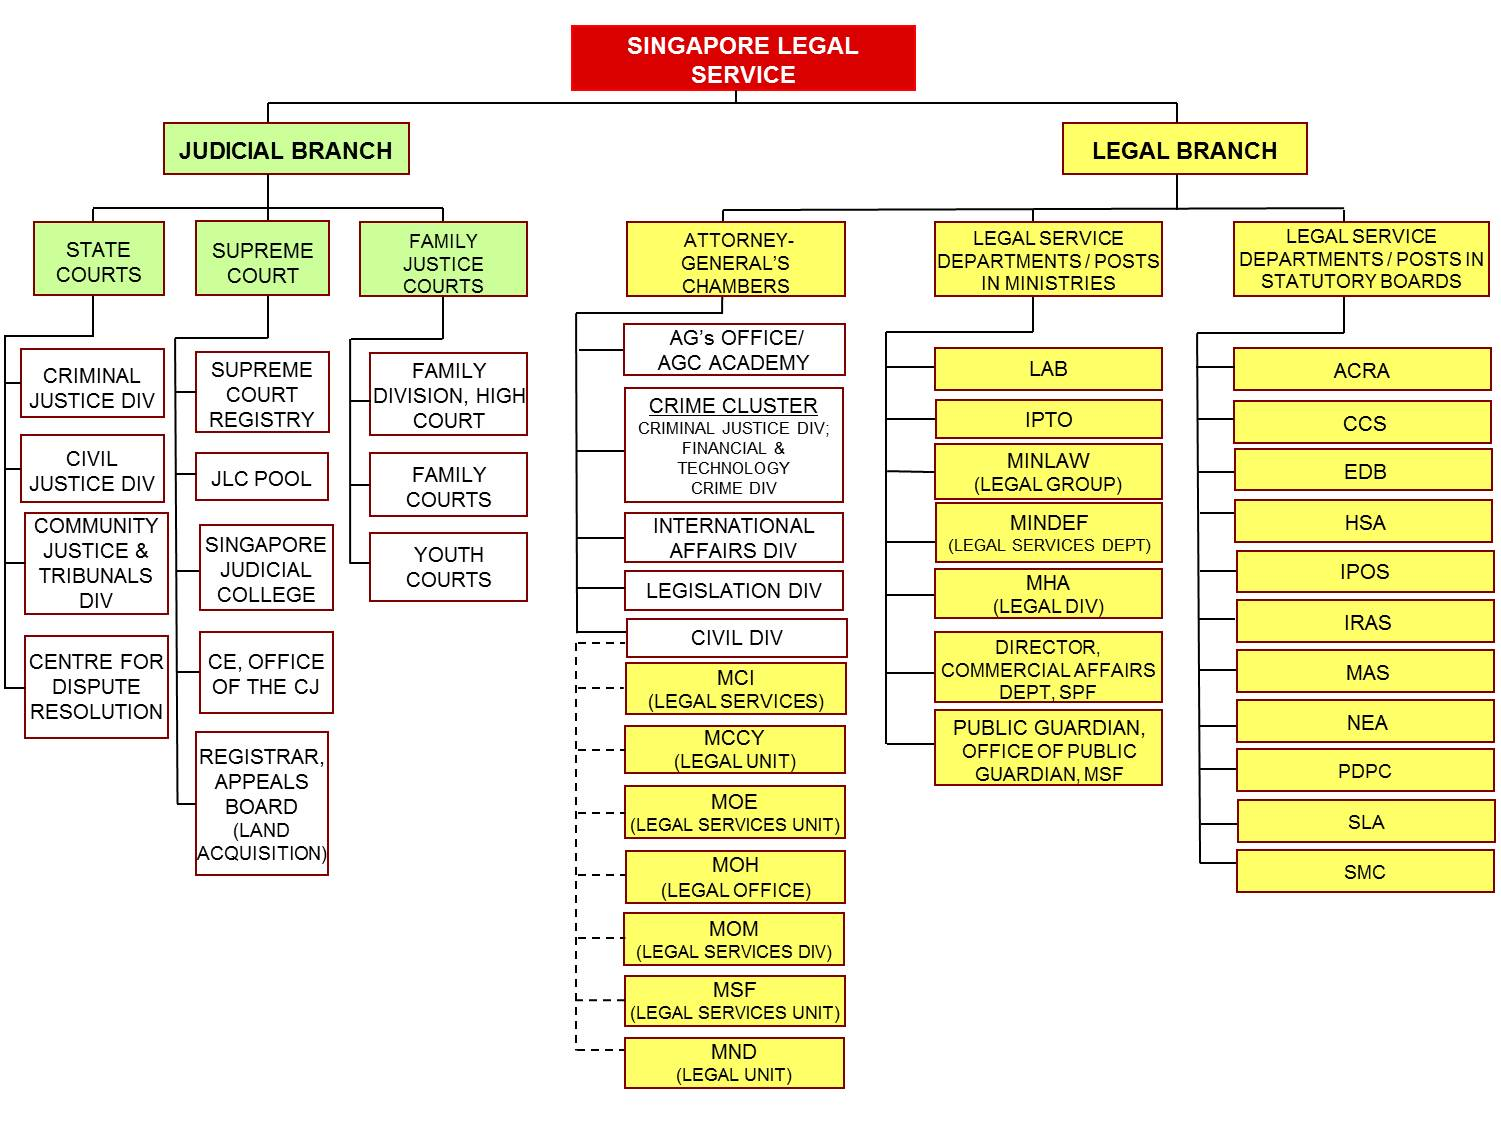 Structure of the singapore legal service the legal service consists of two branches the judicial branch and the legal branch lsos appointed to the legal service may be posted to either branch in nvjuhfo Gallery